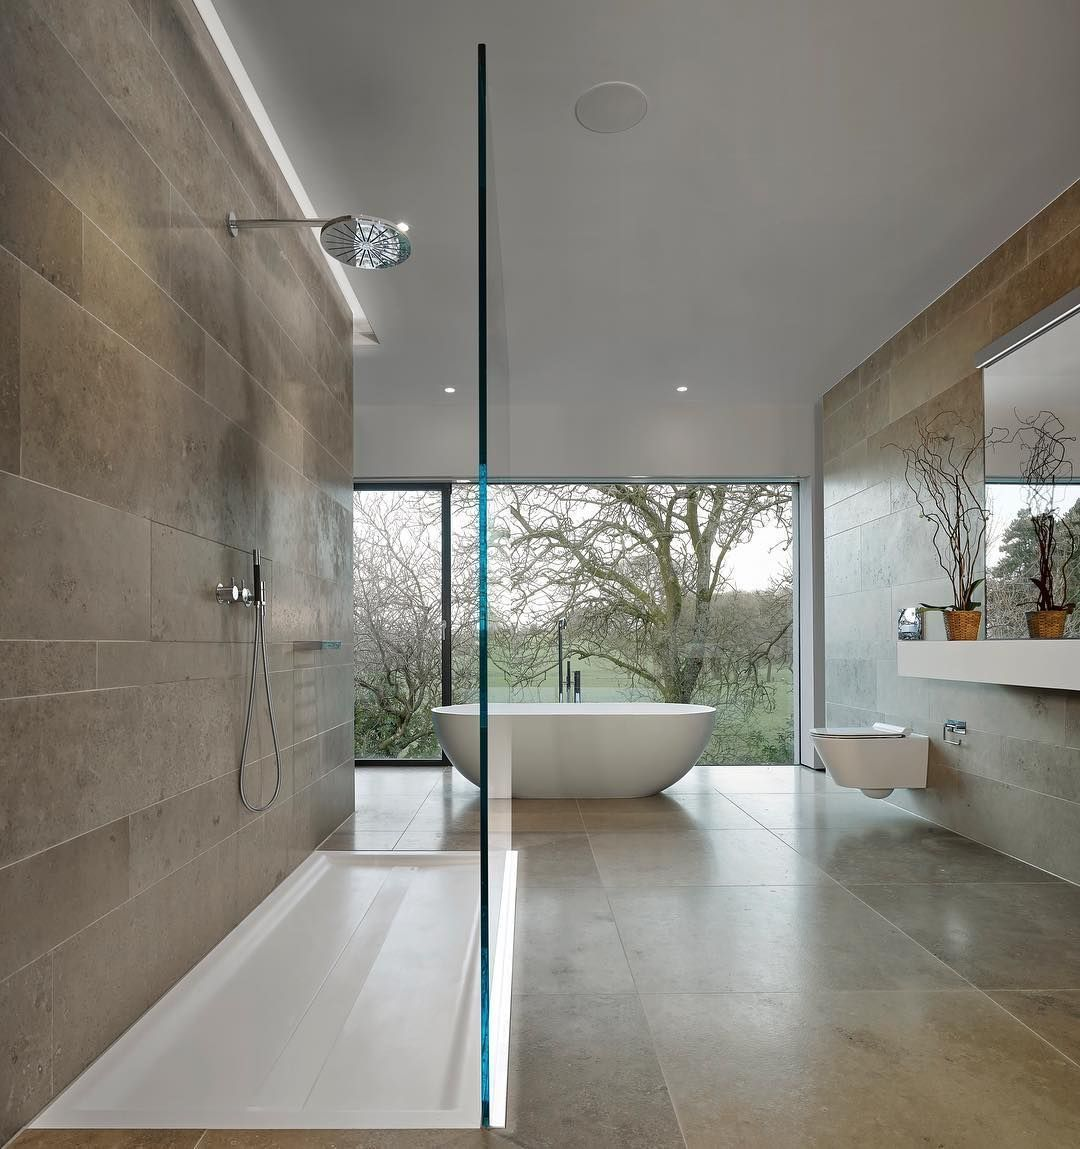 Bathroom To Our Award Winning Project In Lancashire As Featured In Grand Designs We Wanted T Stylish Bathroom Small Bathroom Renovations Update Small Bathroom